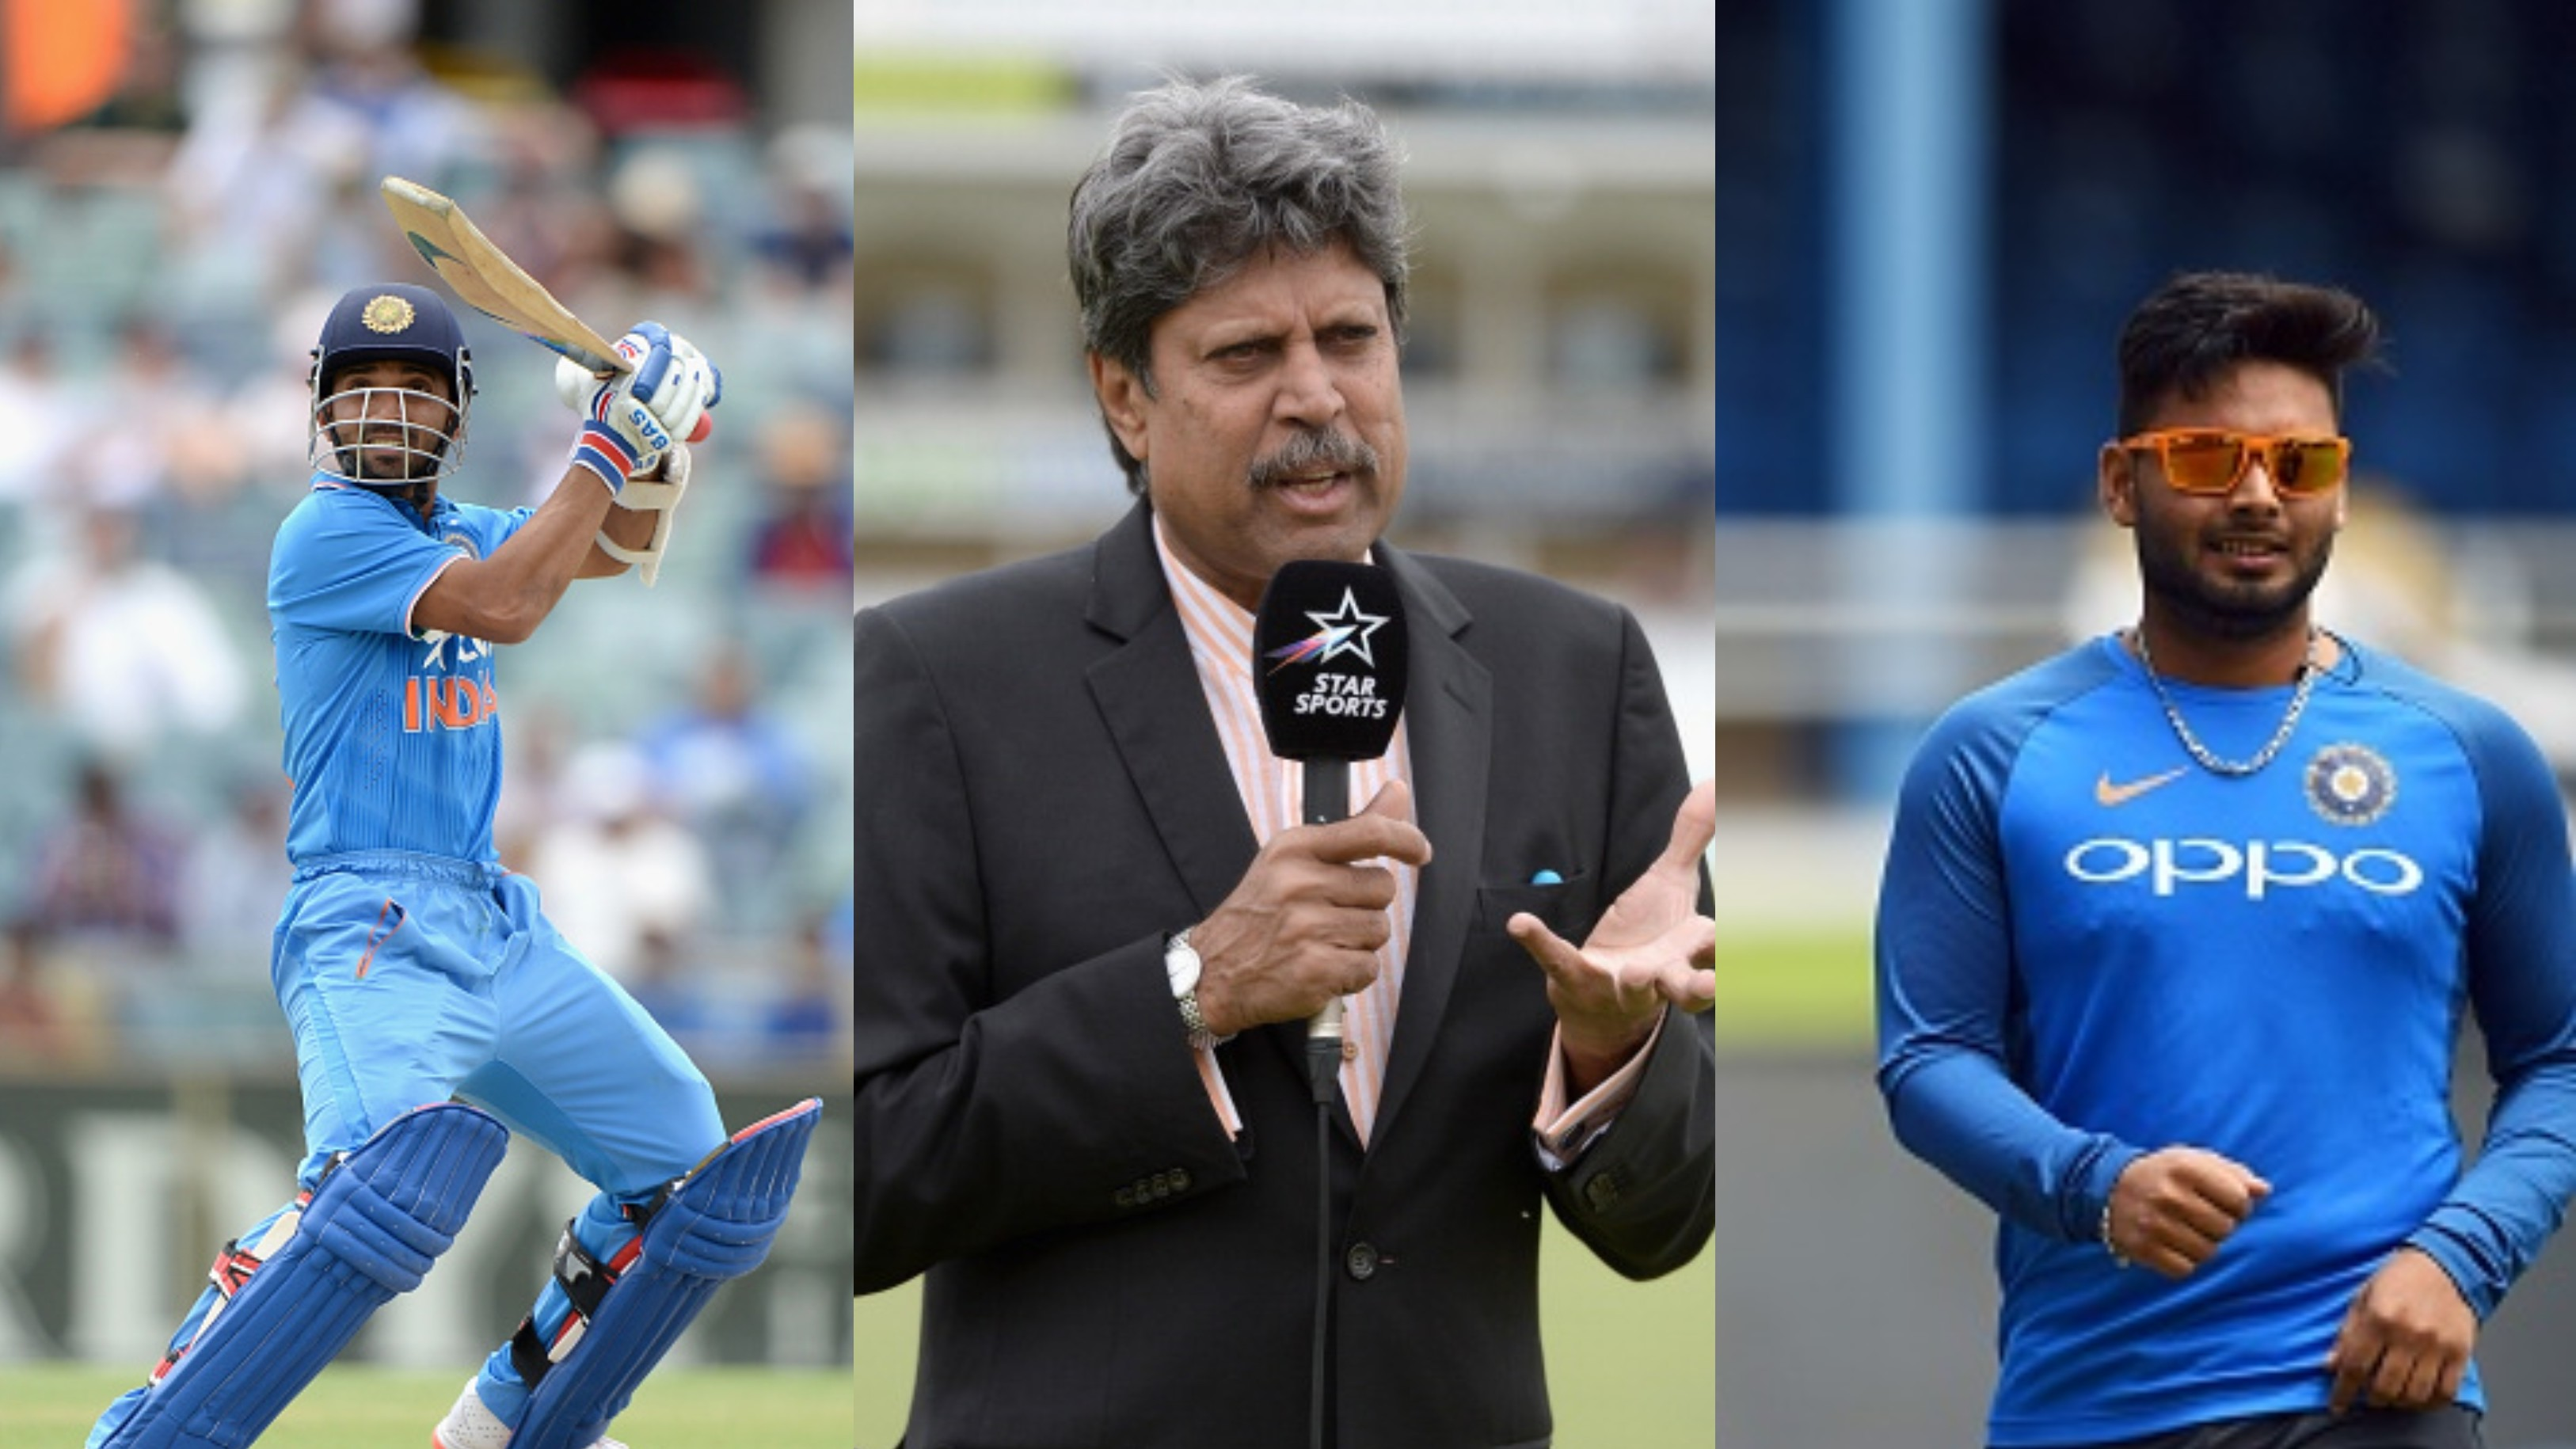 CWC 2019: Kapil Dev names his surprise pick to replace Dhawan in Indian team